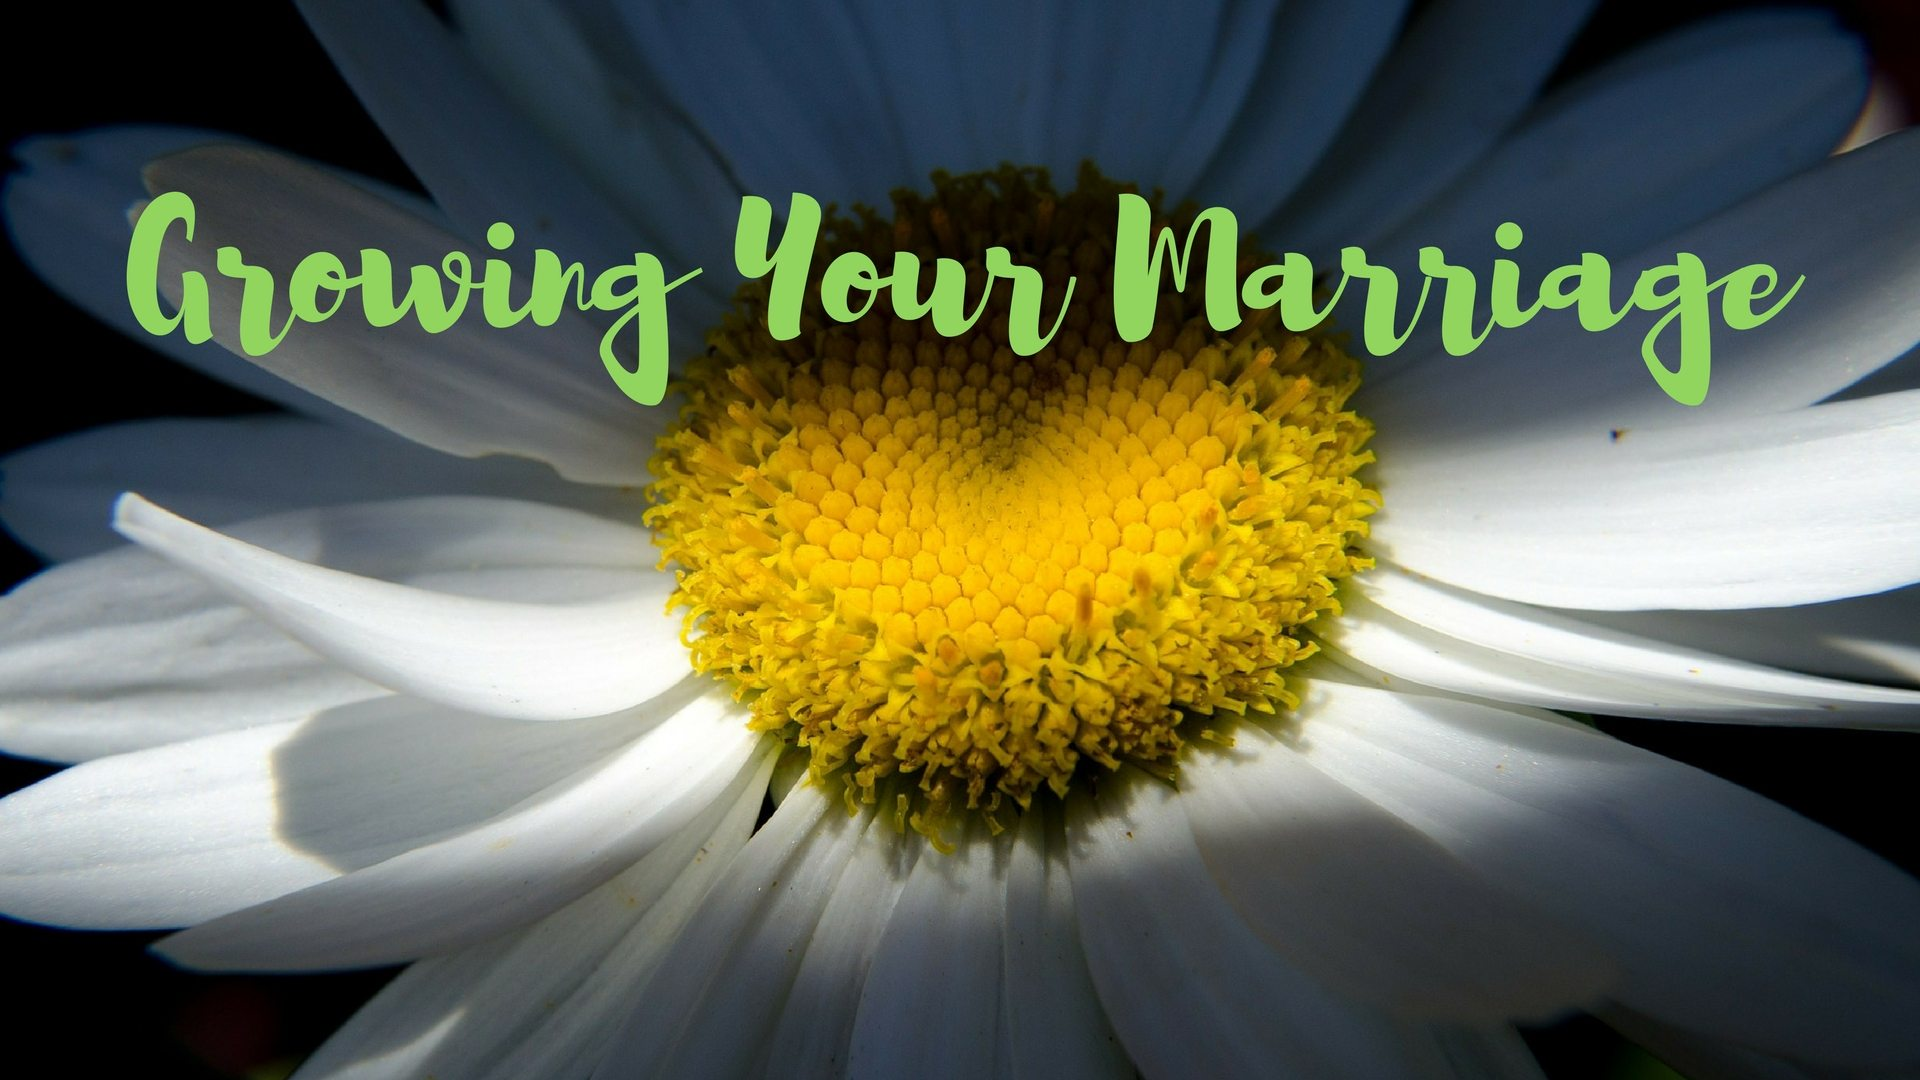 Growing Your Marriage - Pixabay - Canva